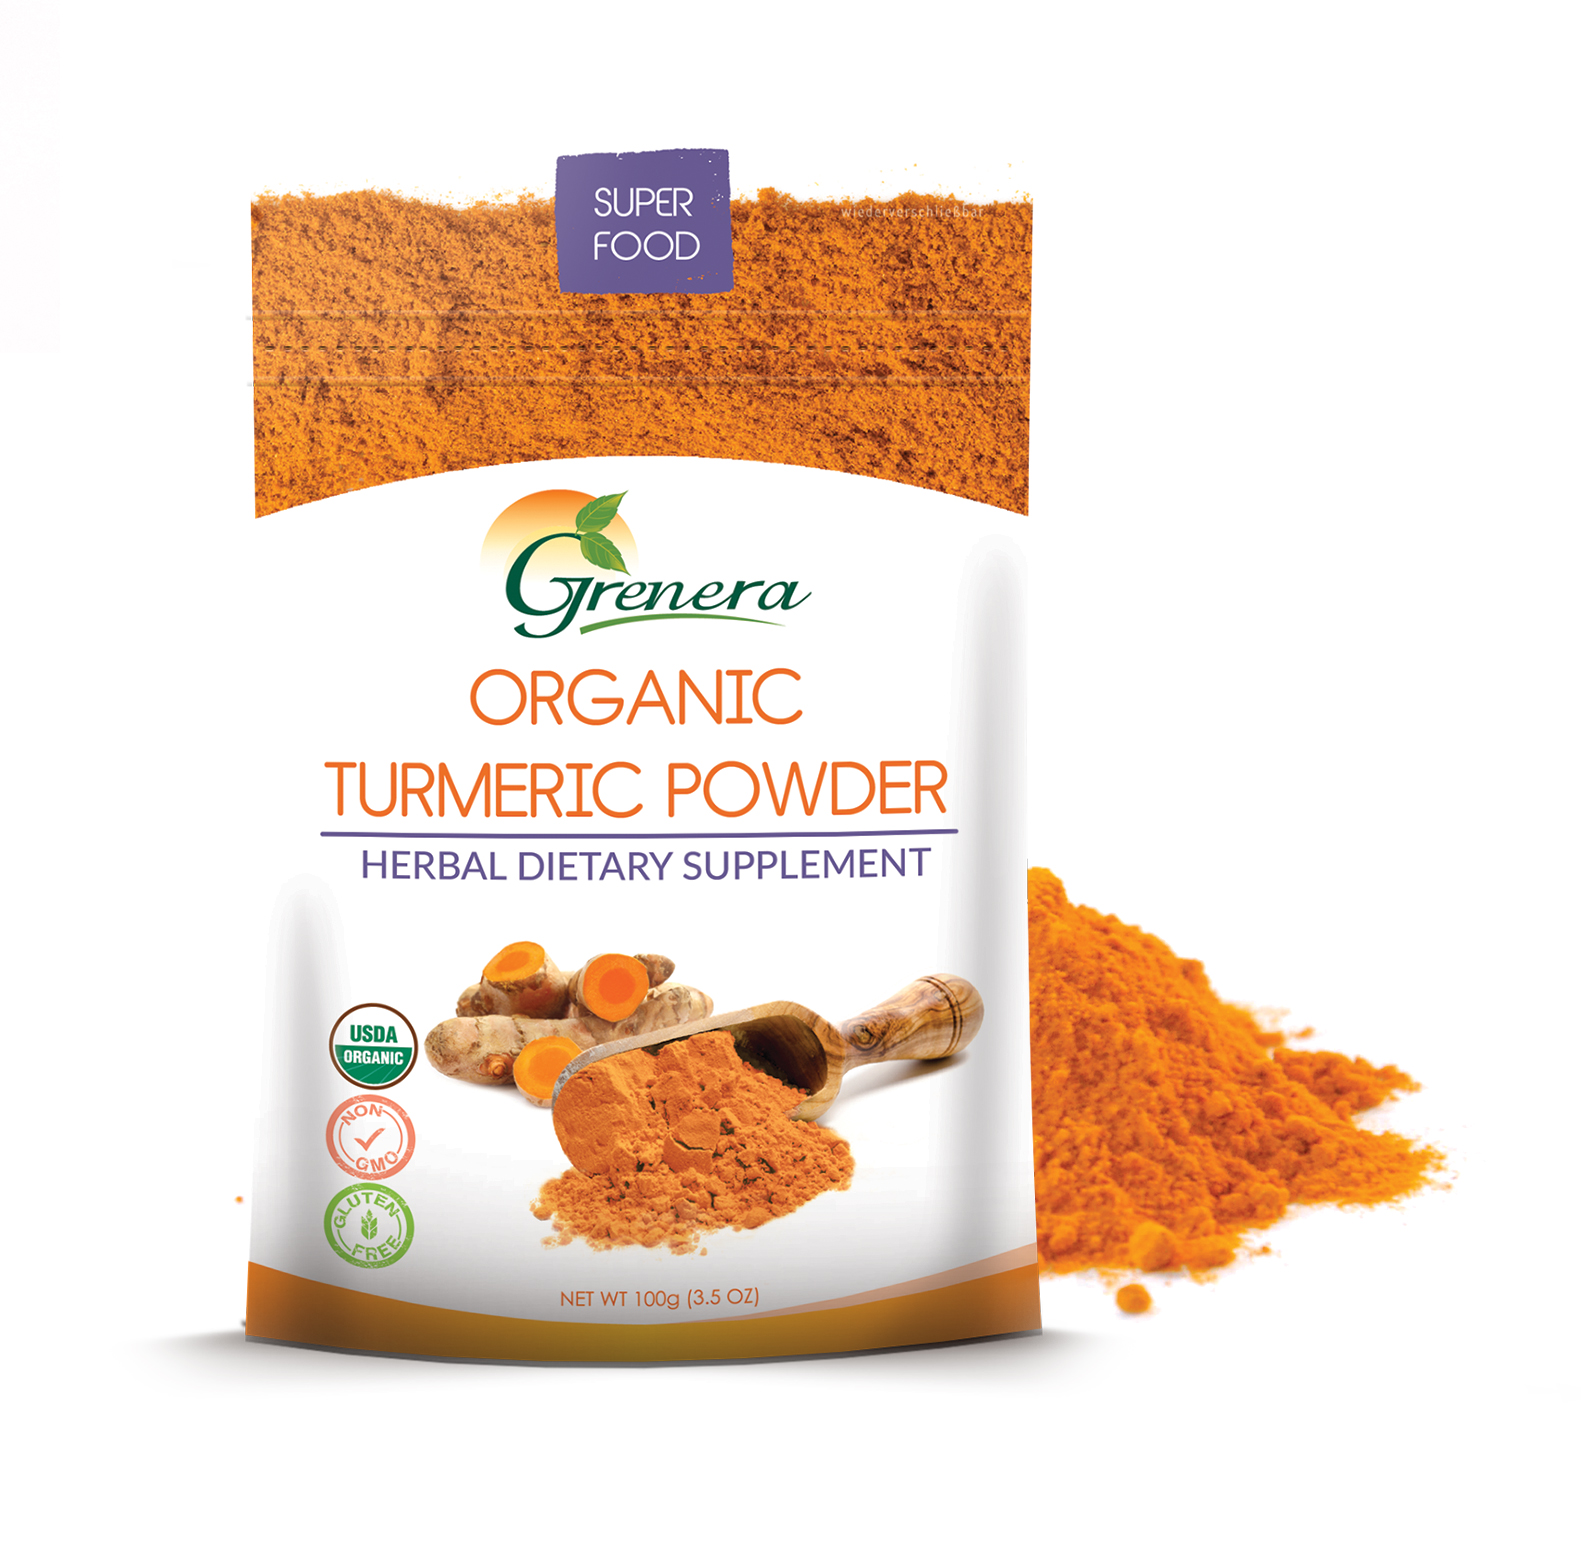 100% natural, organic and vegan-friendly dried Turmeric powder